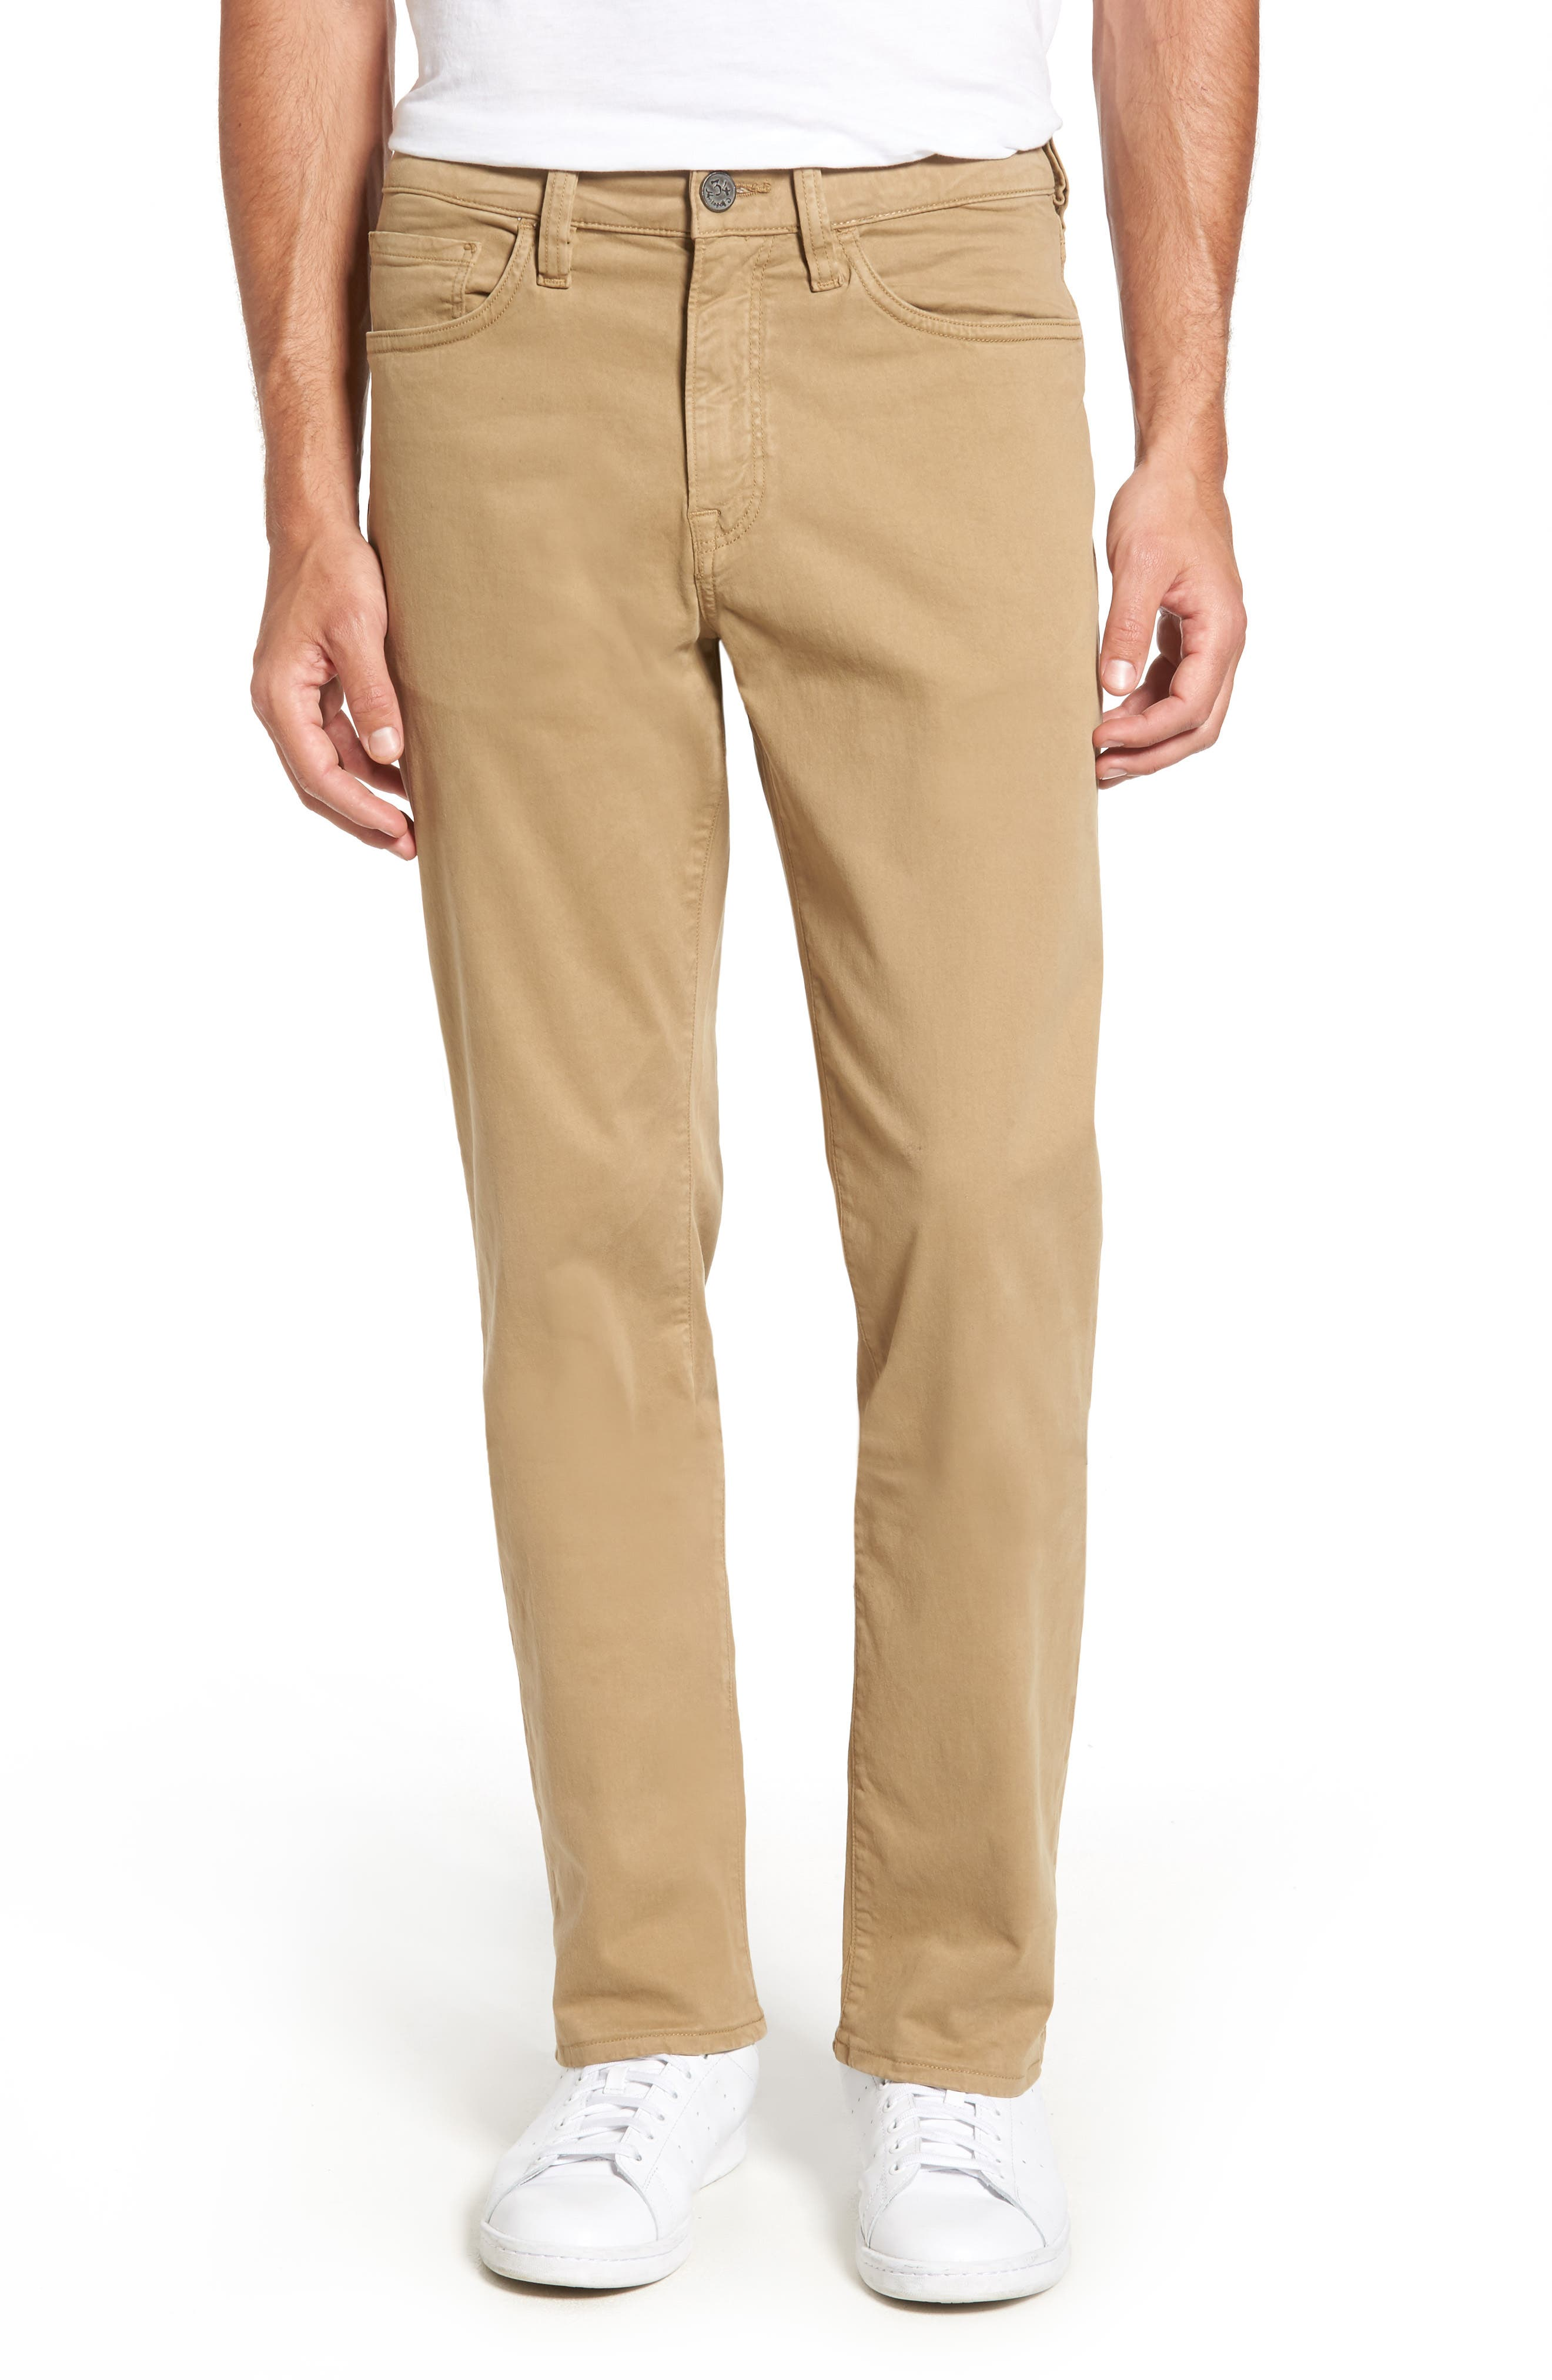 'Charisma' Classic Relaxed Fit,                         Main,                         color, Khaki Twill